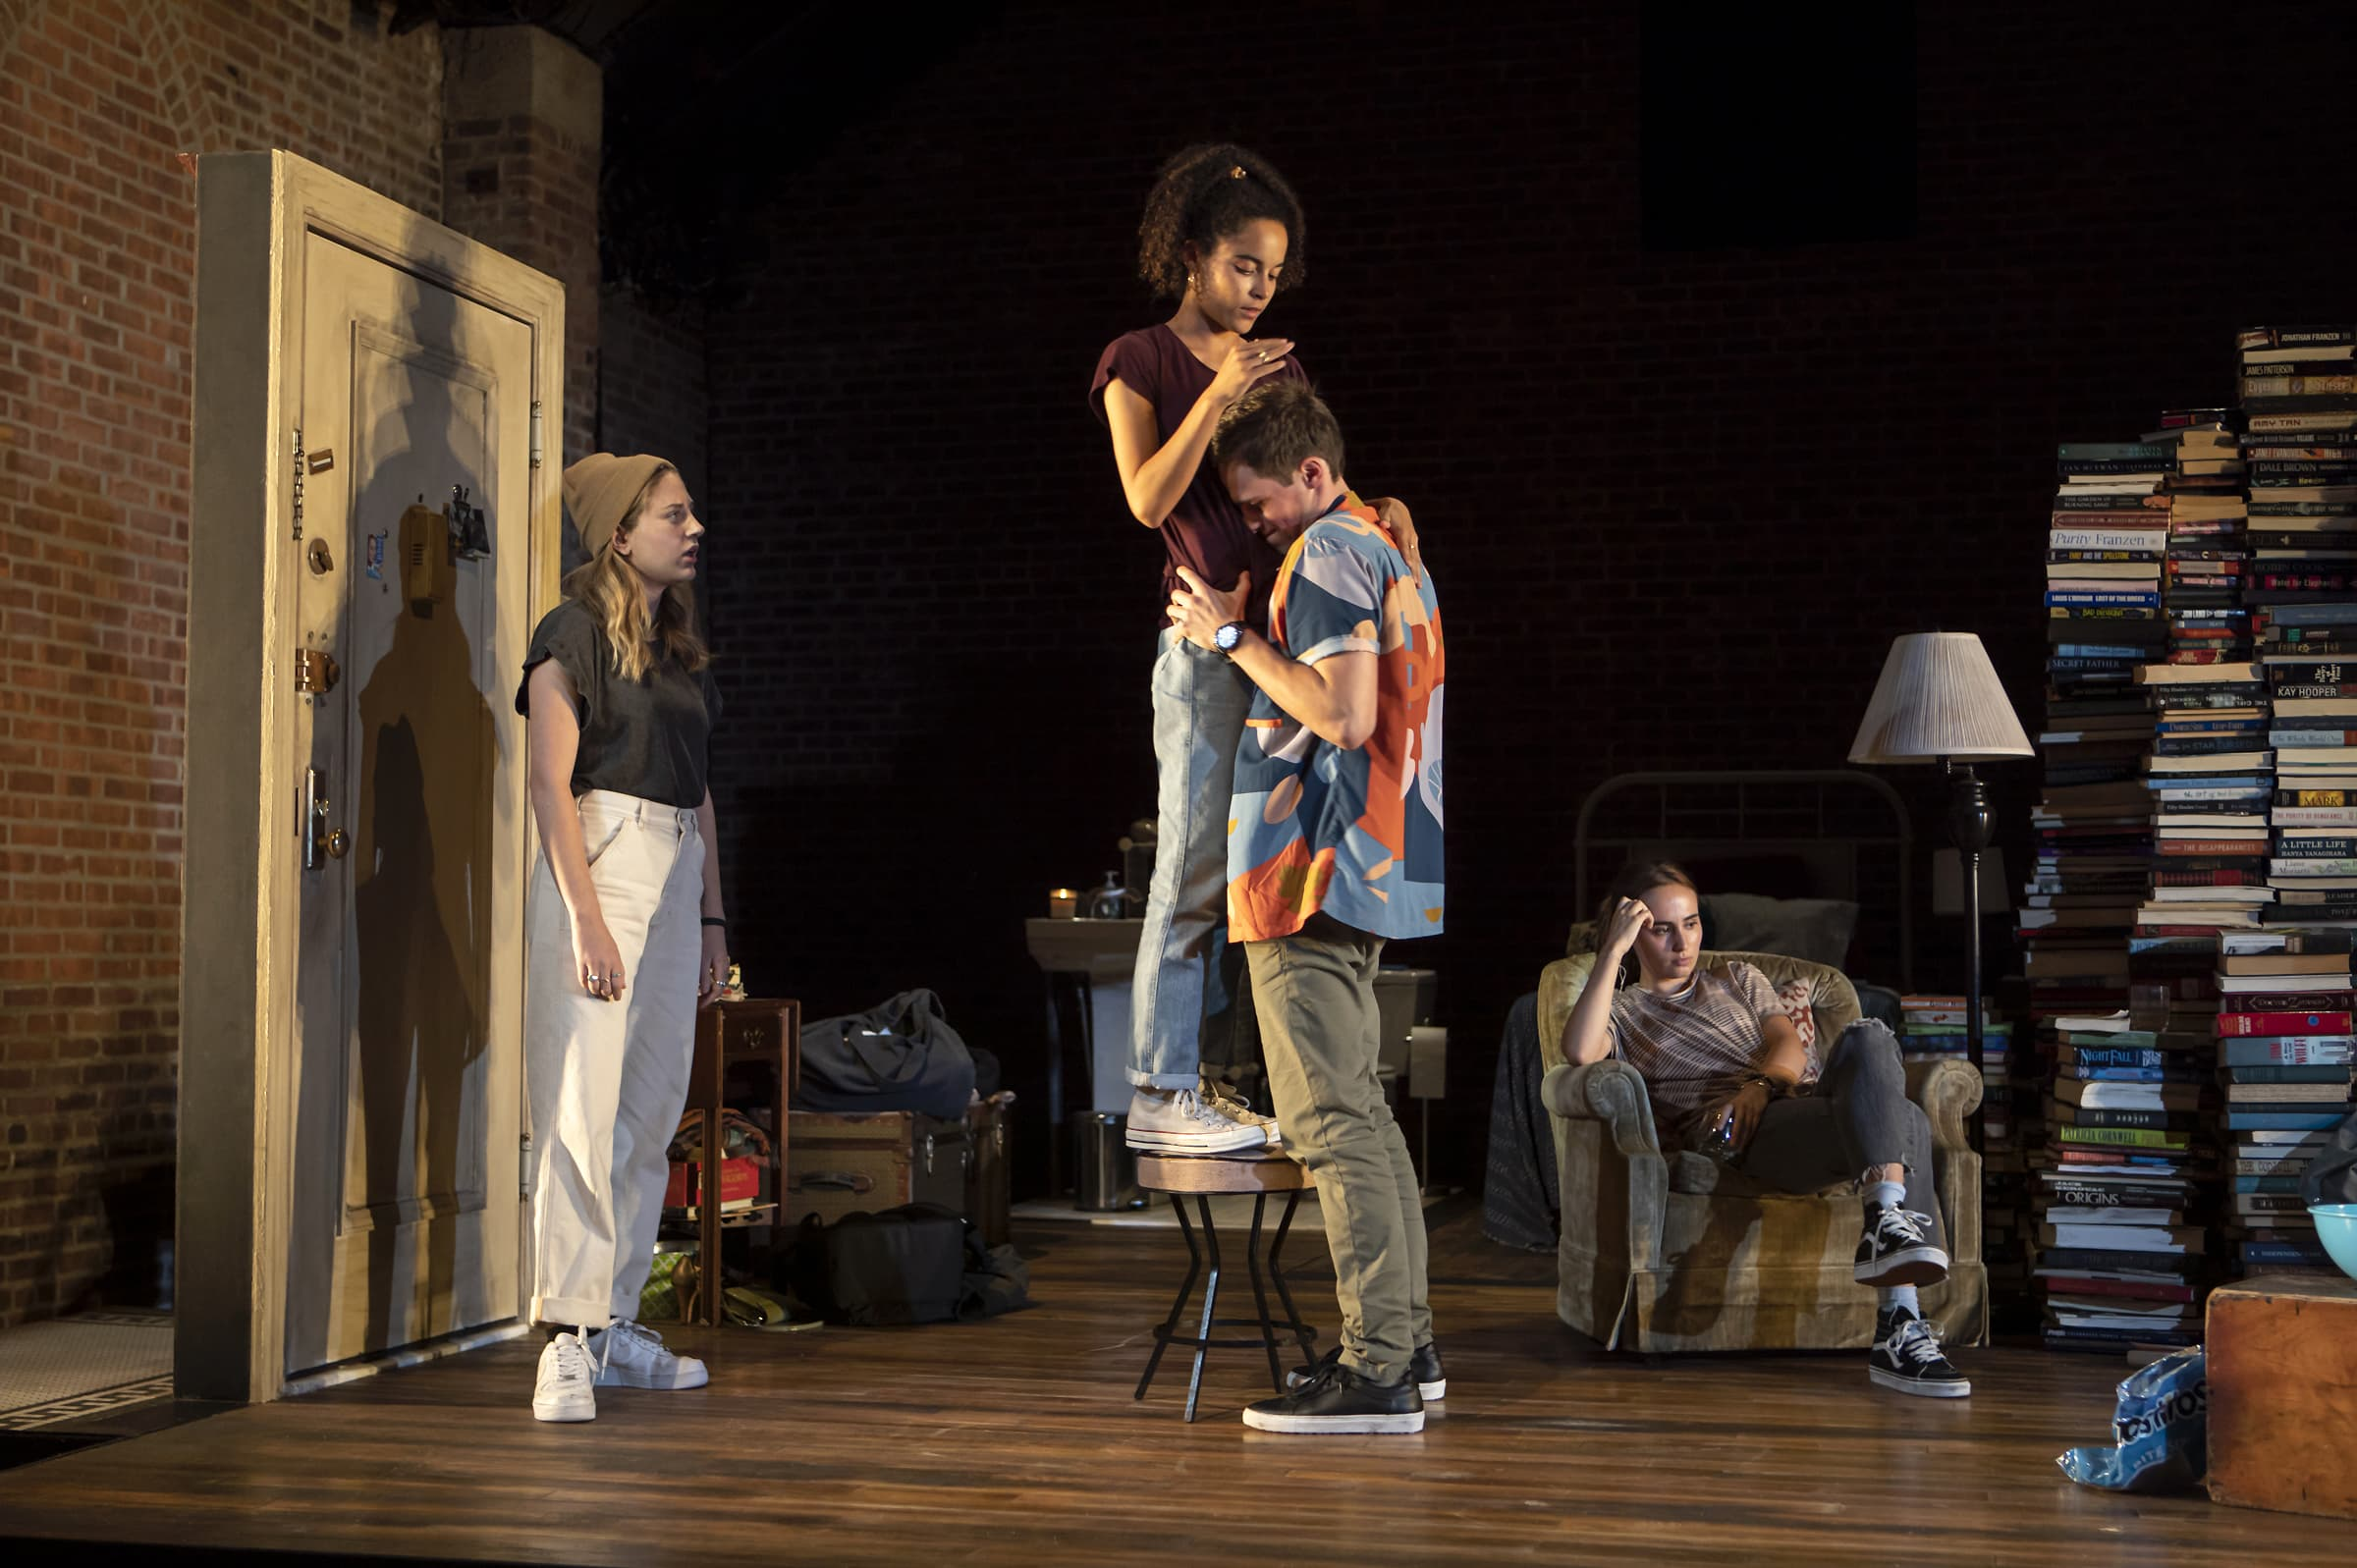 From left to right: Ruby Frankel (Alice), Juliana Canfield (Gil), Zane Pais (Milo), and Sadie Scott (Marie) in Sunday. Photo: Monique Carboni